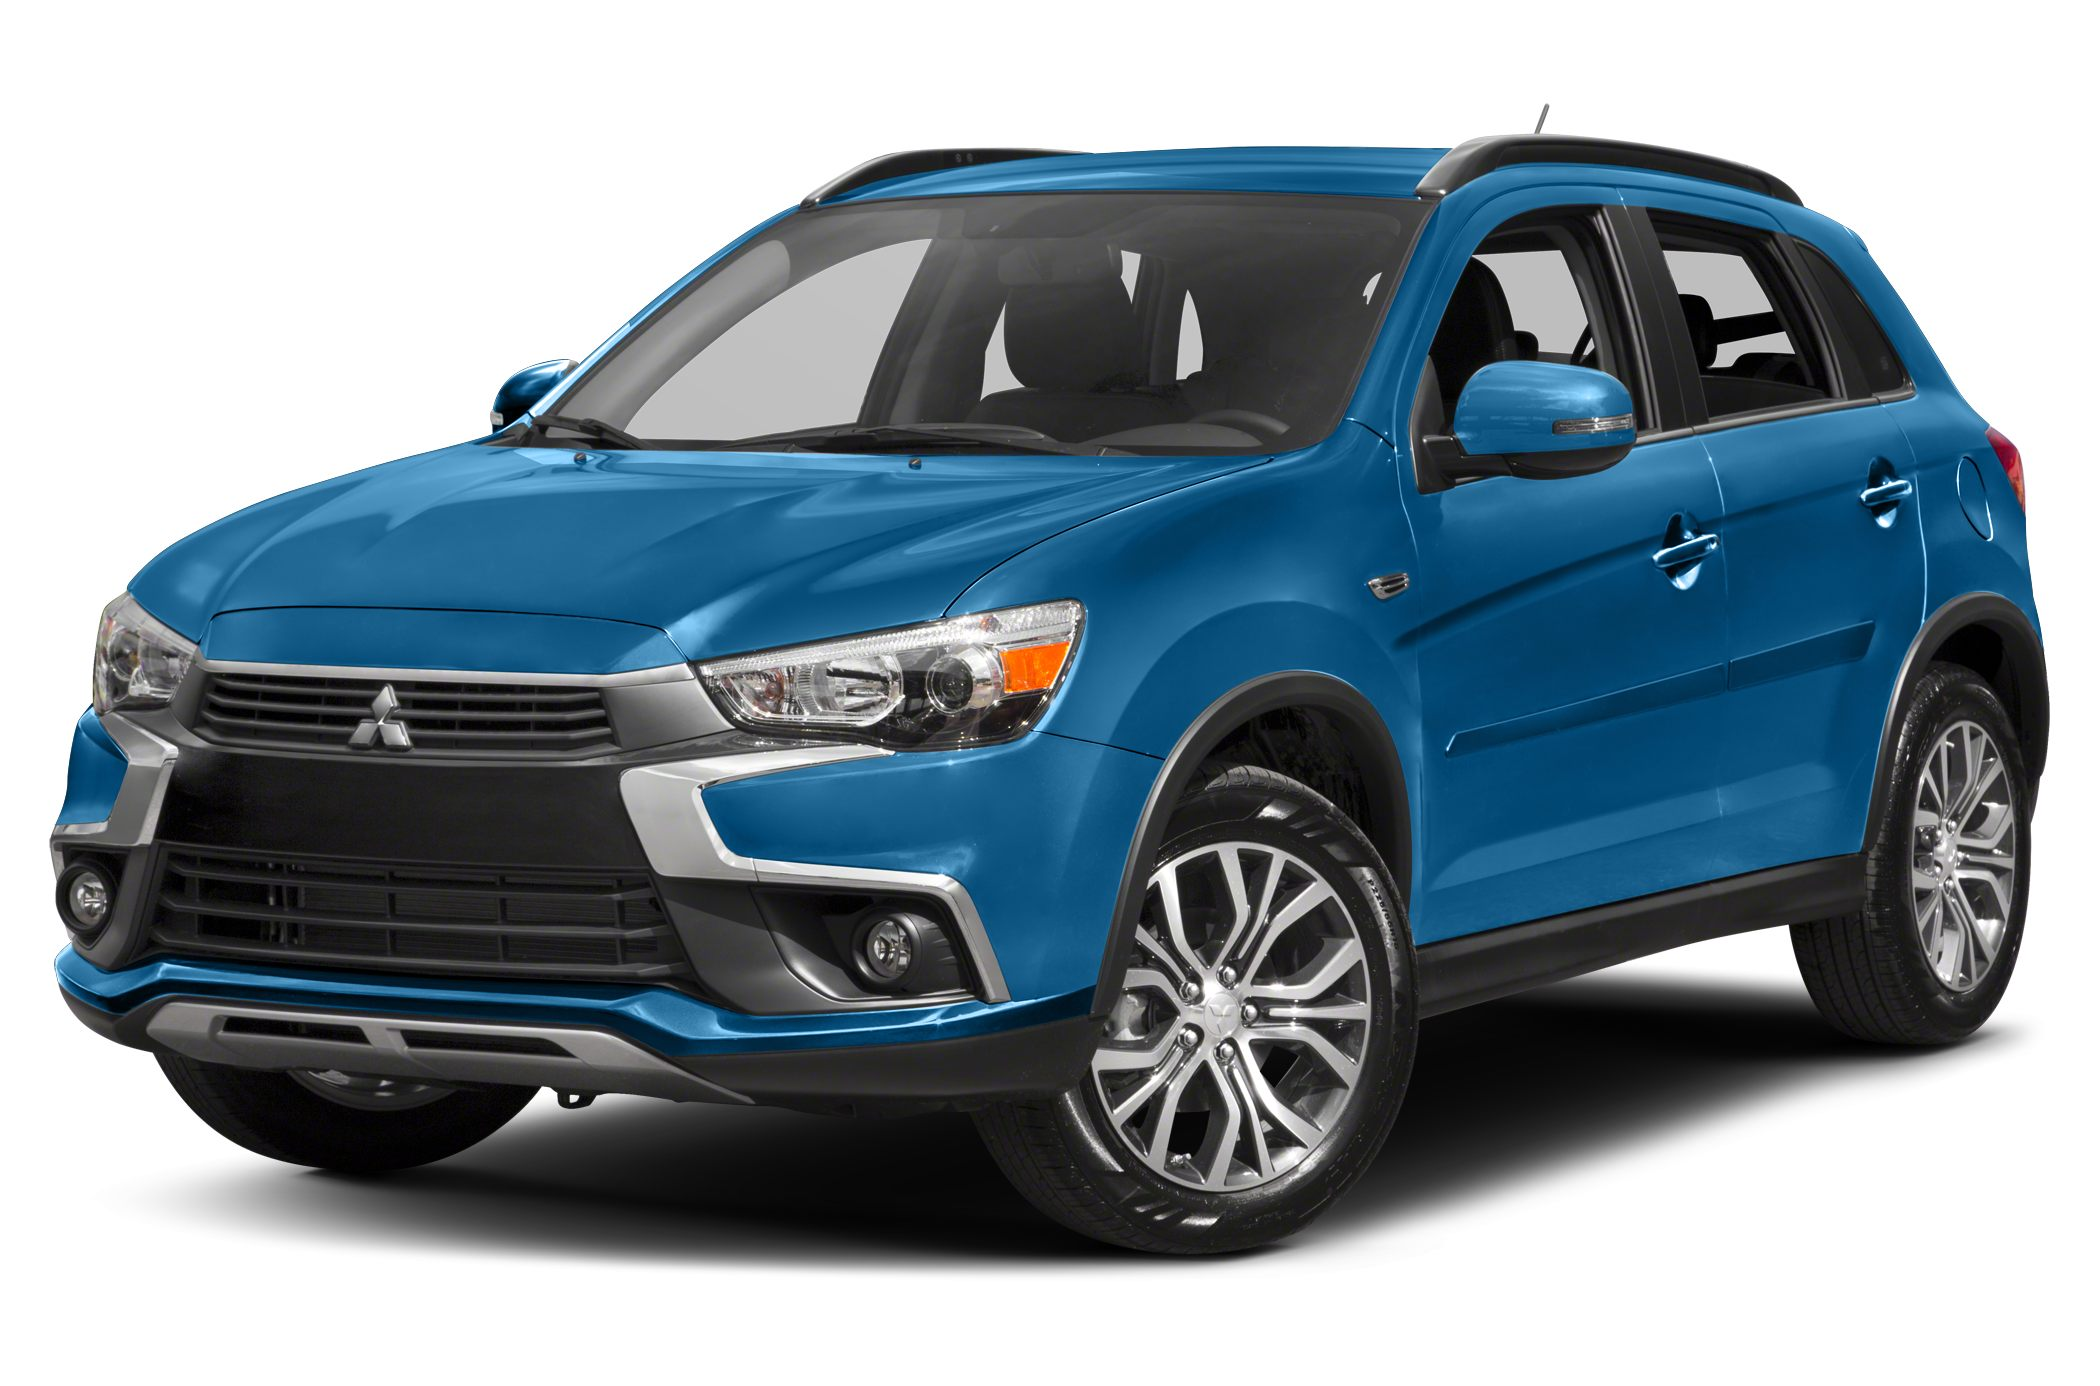 2016 Mitsubishi Outlander Sport 20 ES Price is listed after all applicable rebates on PURCHASE or